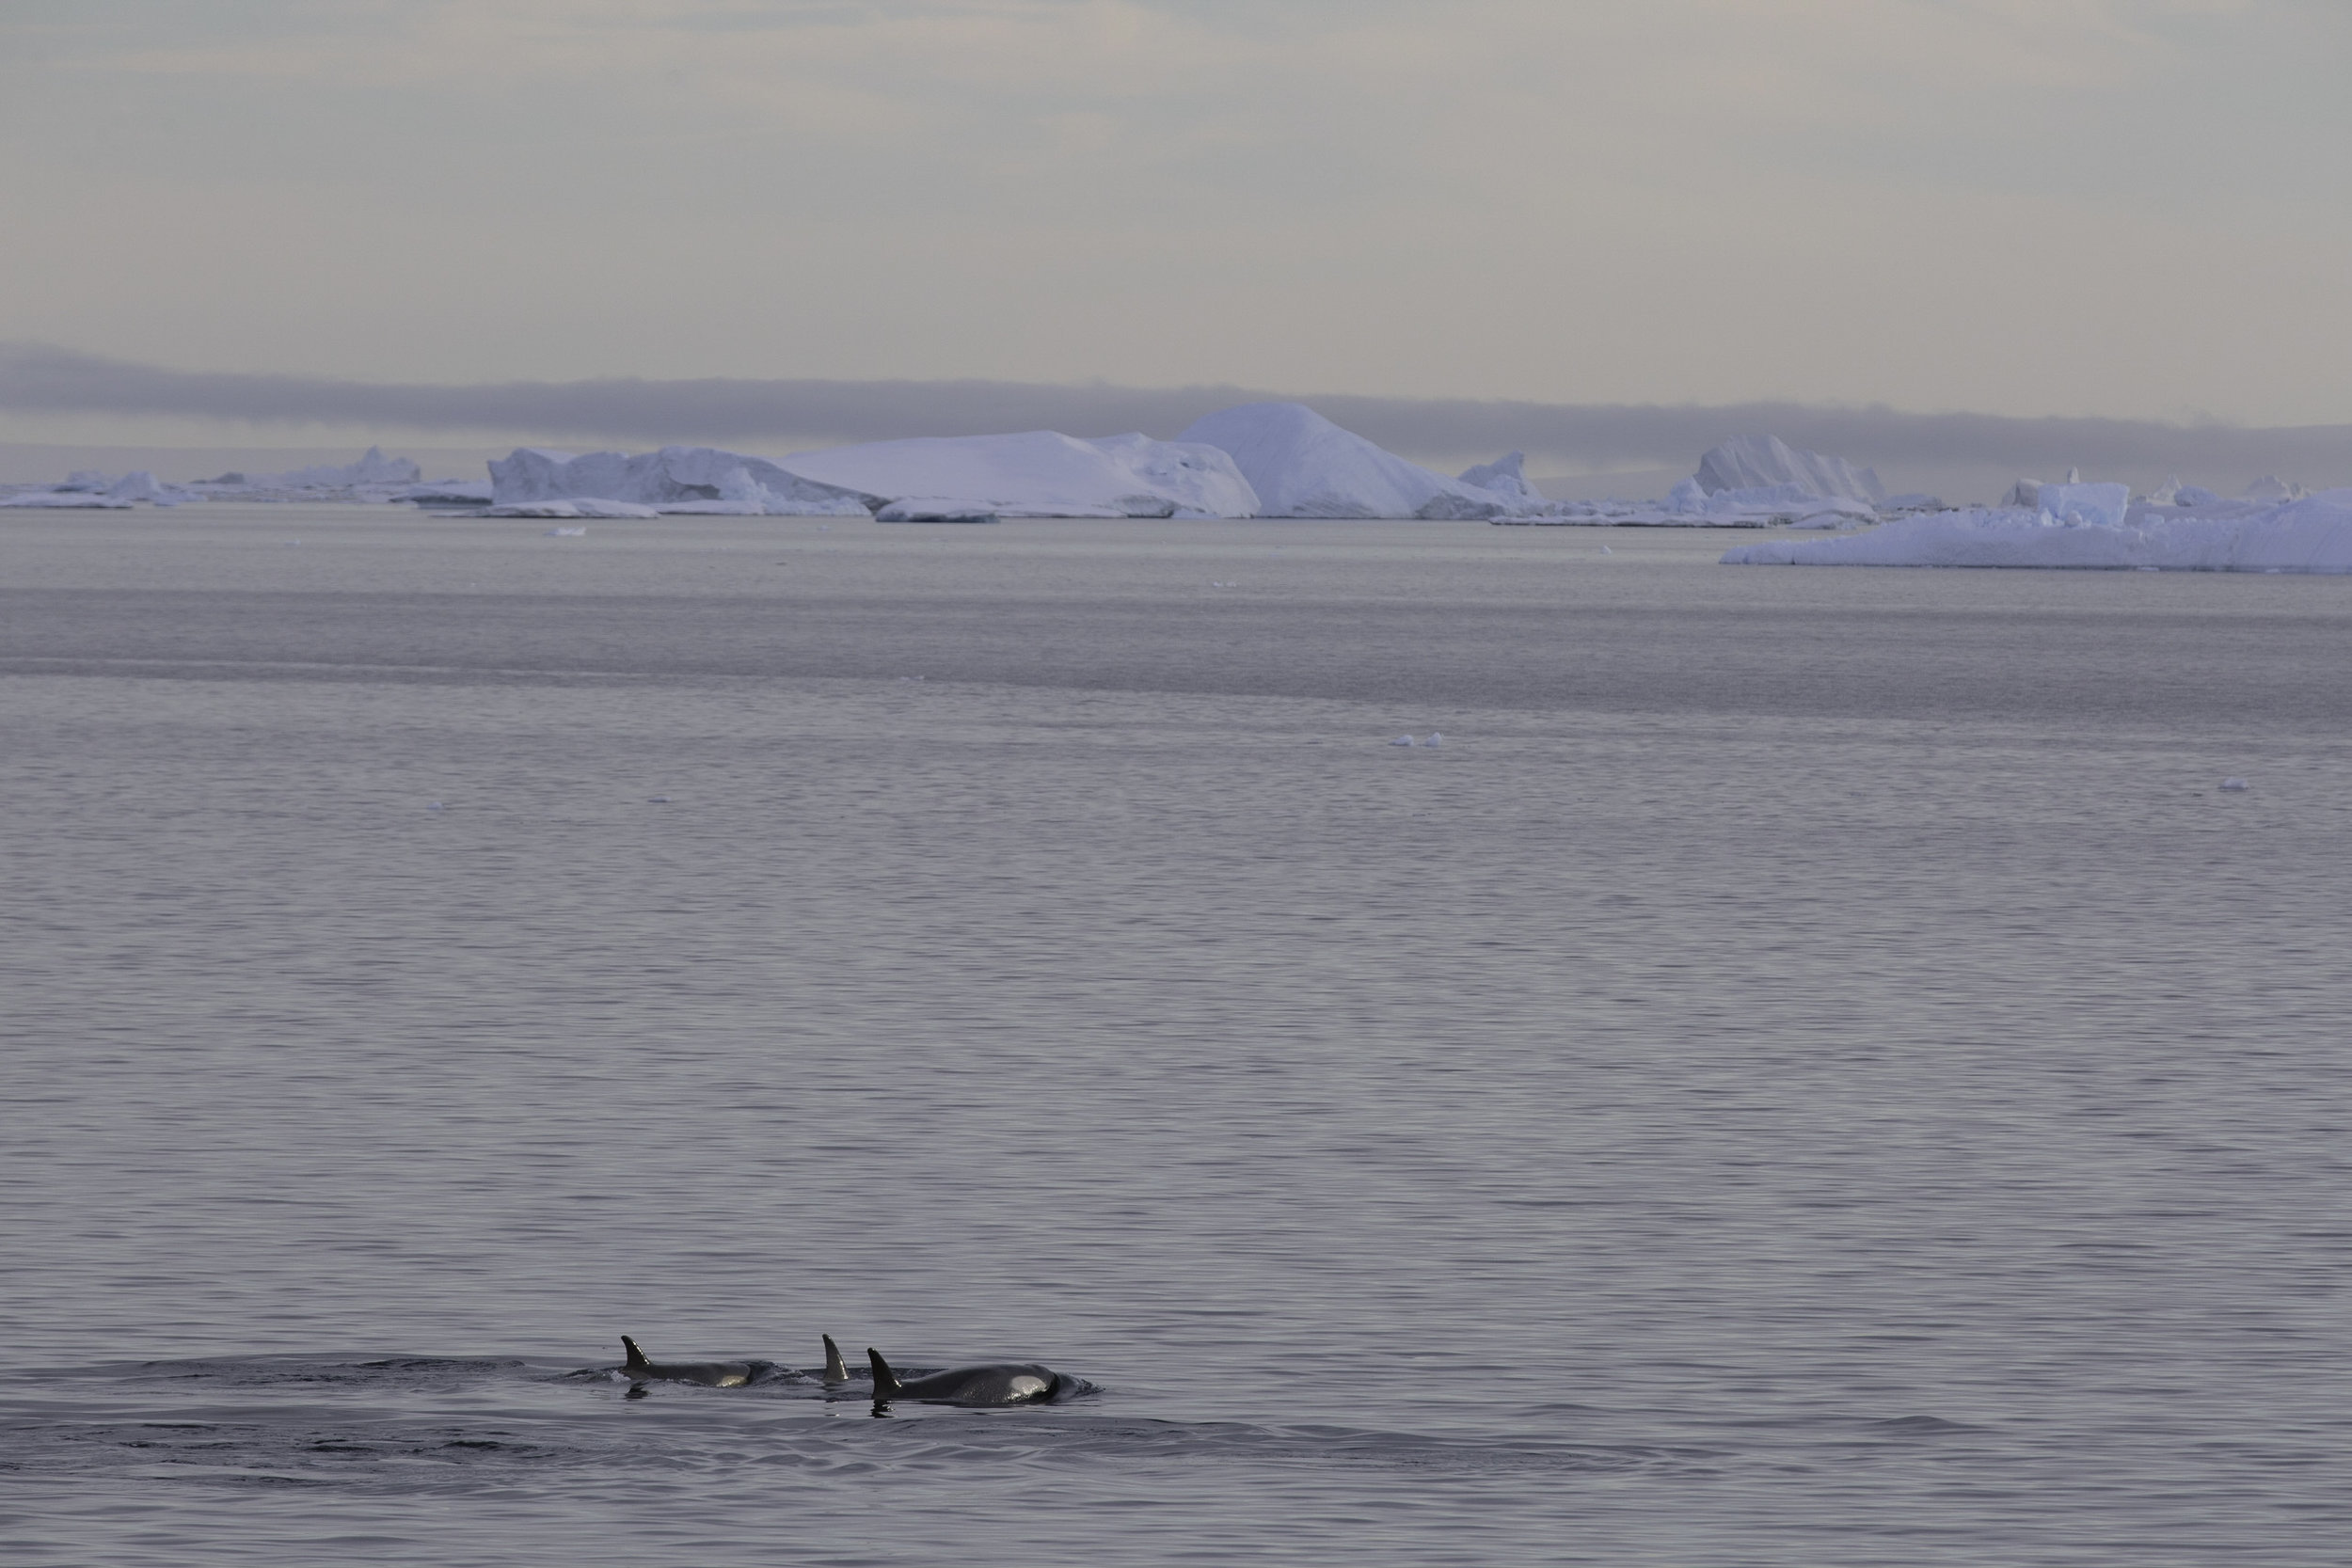 One of four ecotypes of Killer Whale in Antarctica, this group of three Type-A's from a larger pod swim past the ship.